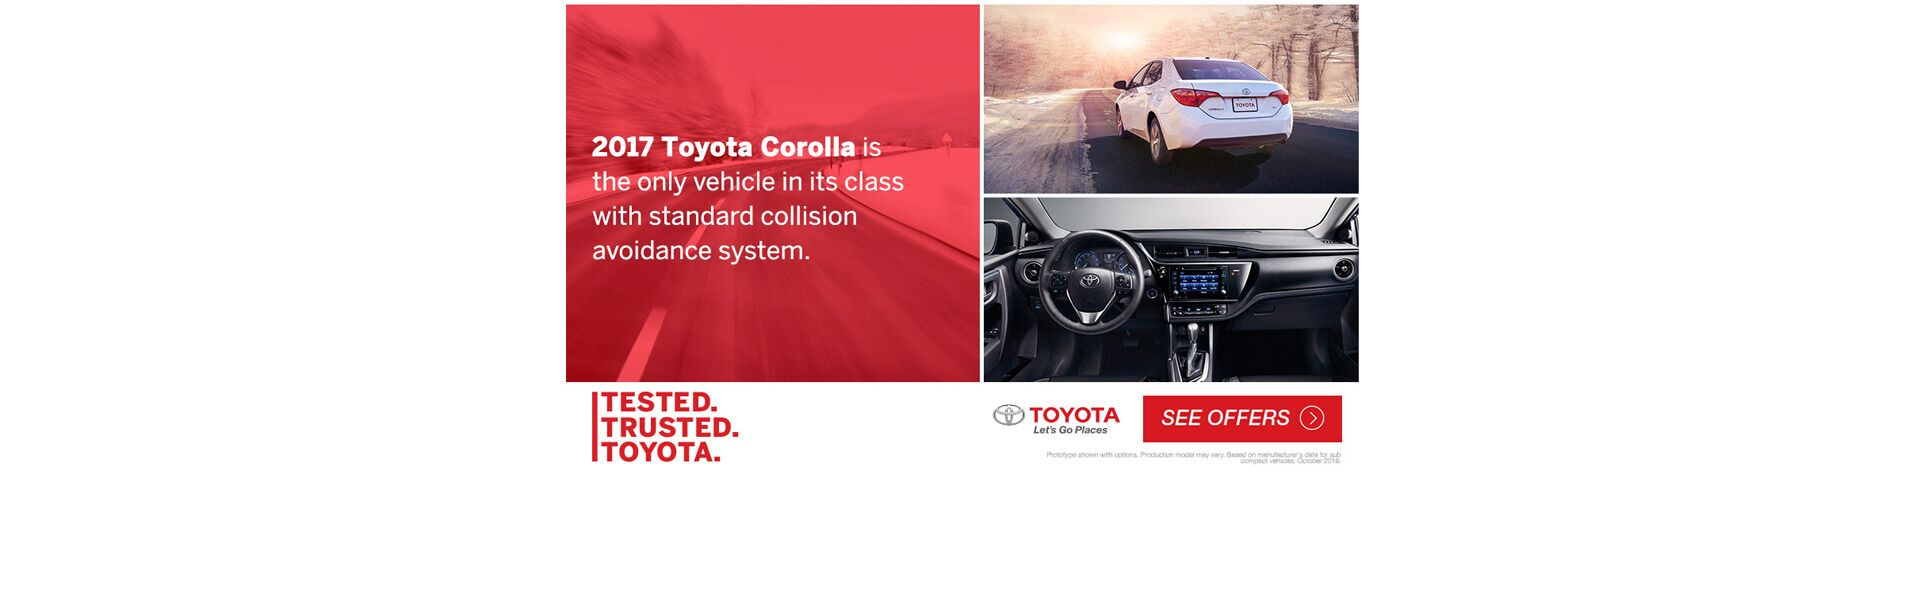 Trusted Toyota Corolla